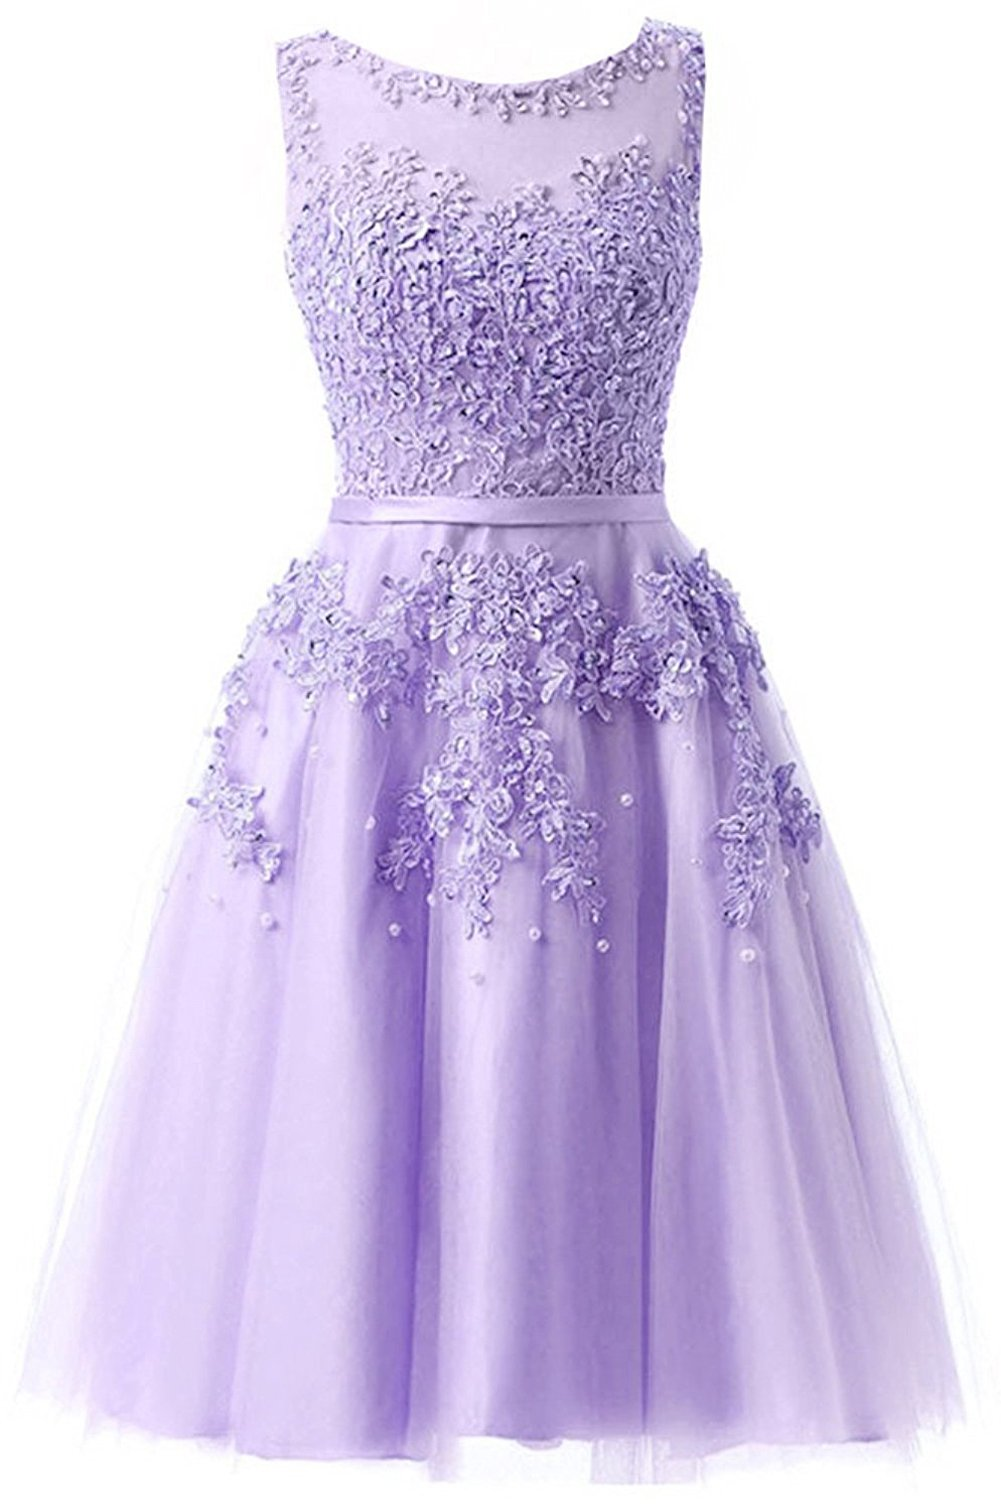 Available at Amazon: Ever Girl Women's Knee Length Tulle Lace Appliques Hollow Homecoming Dress